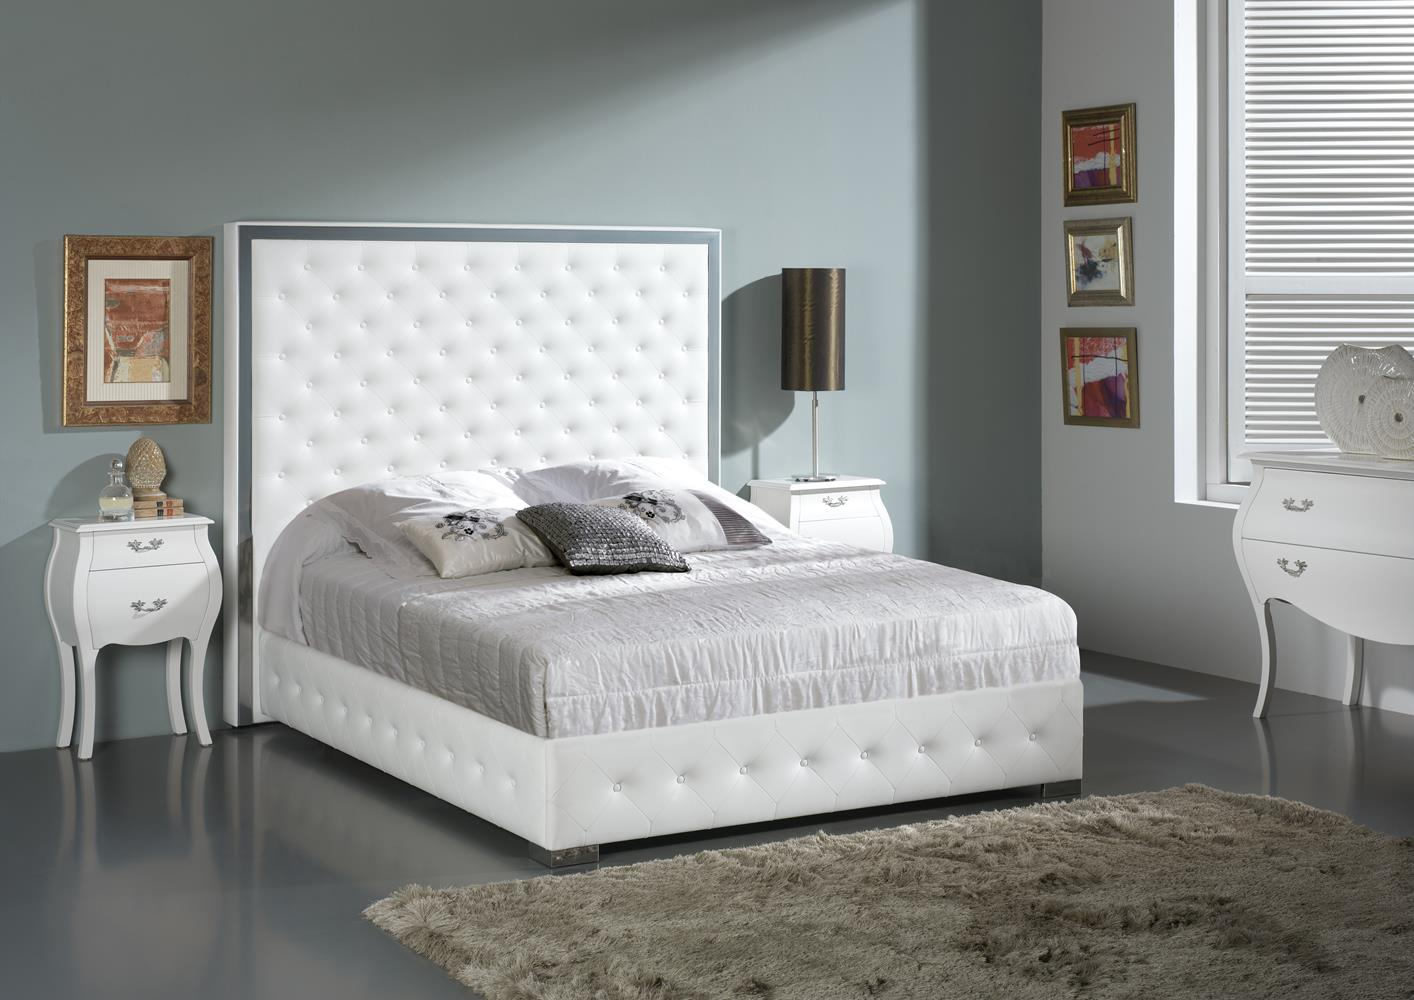 acheter votre t te de lit contemporaine en pvc blanc chez simeuble. Black Bedroom Furniture Sets. Home Design Ideas